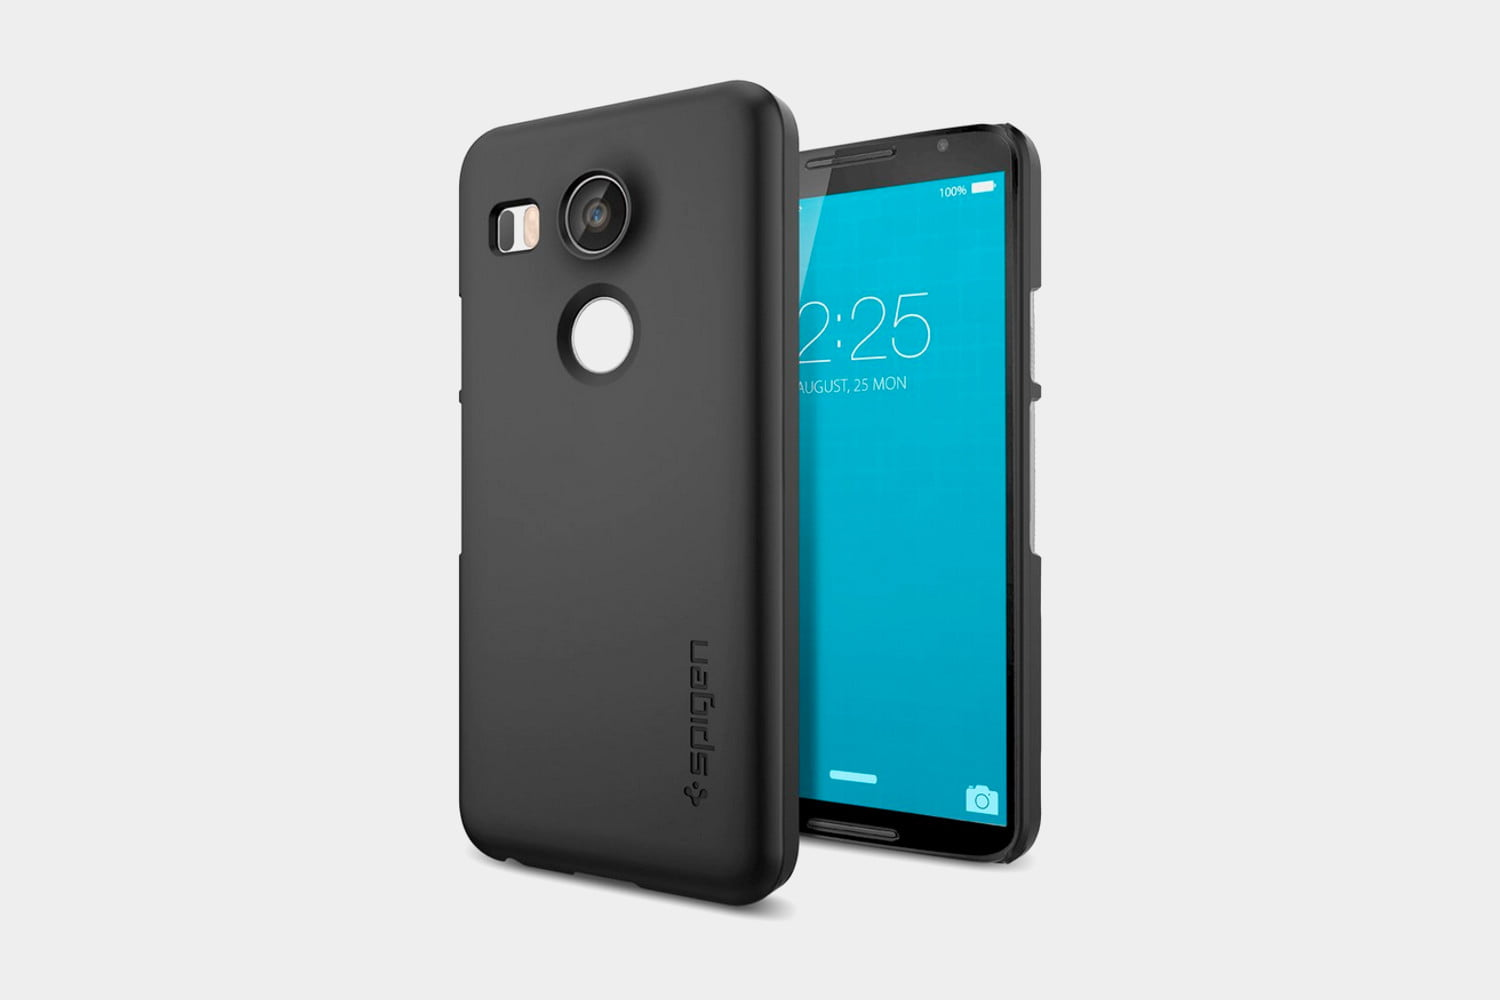 spigen thin fit nexus 5x shell case smooth black very interested getting